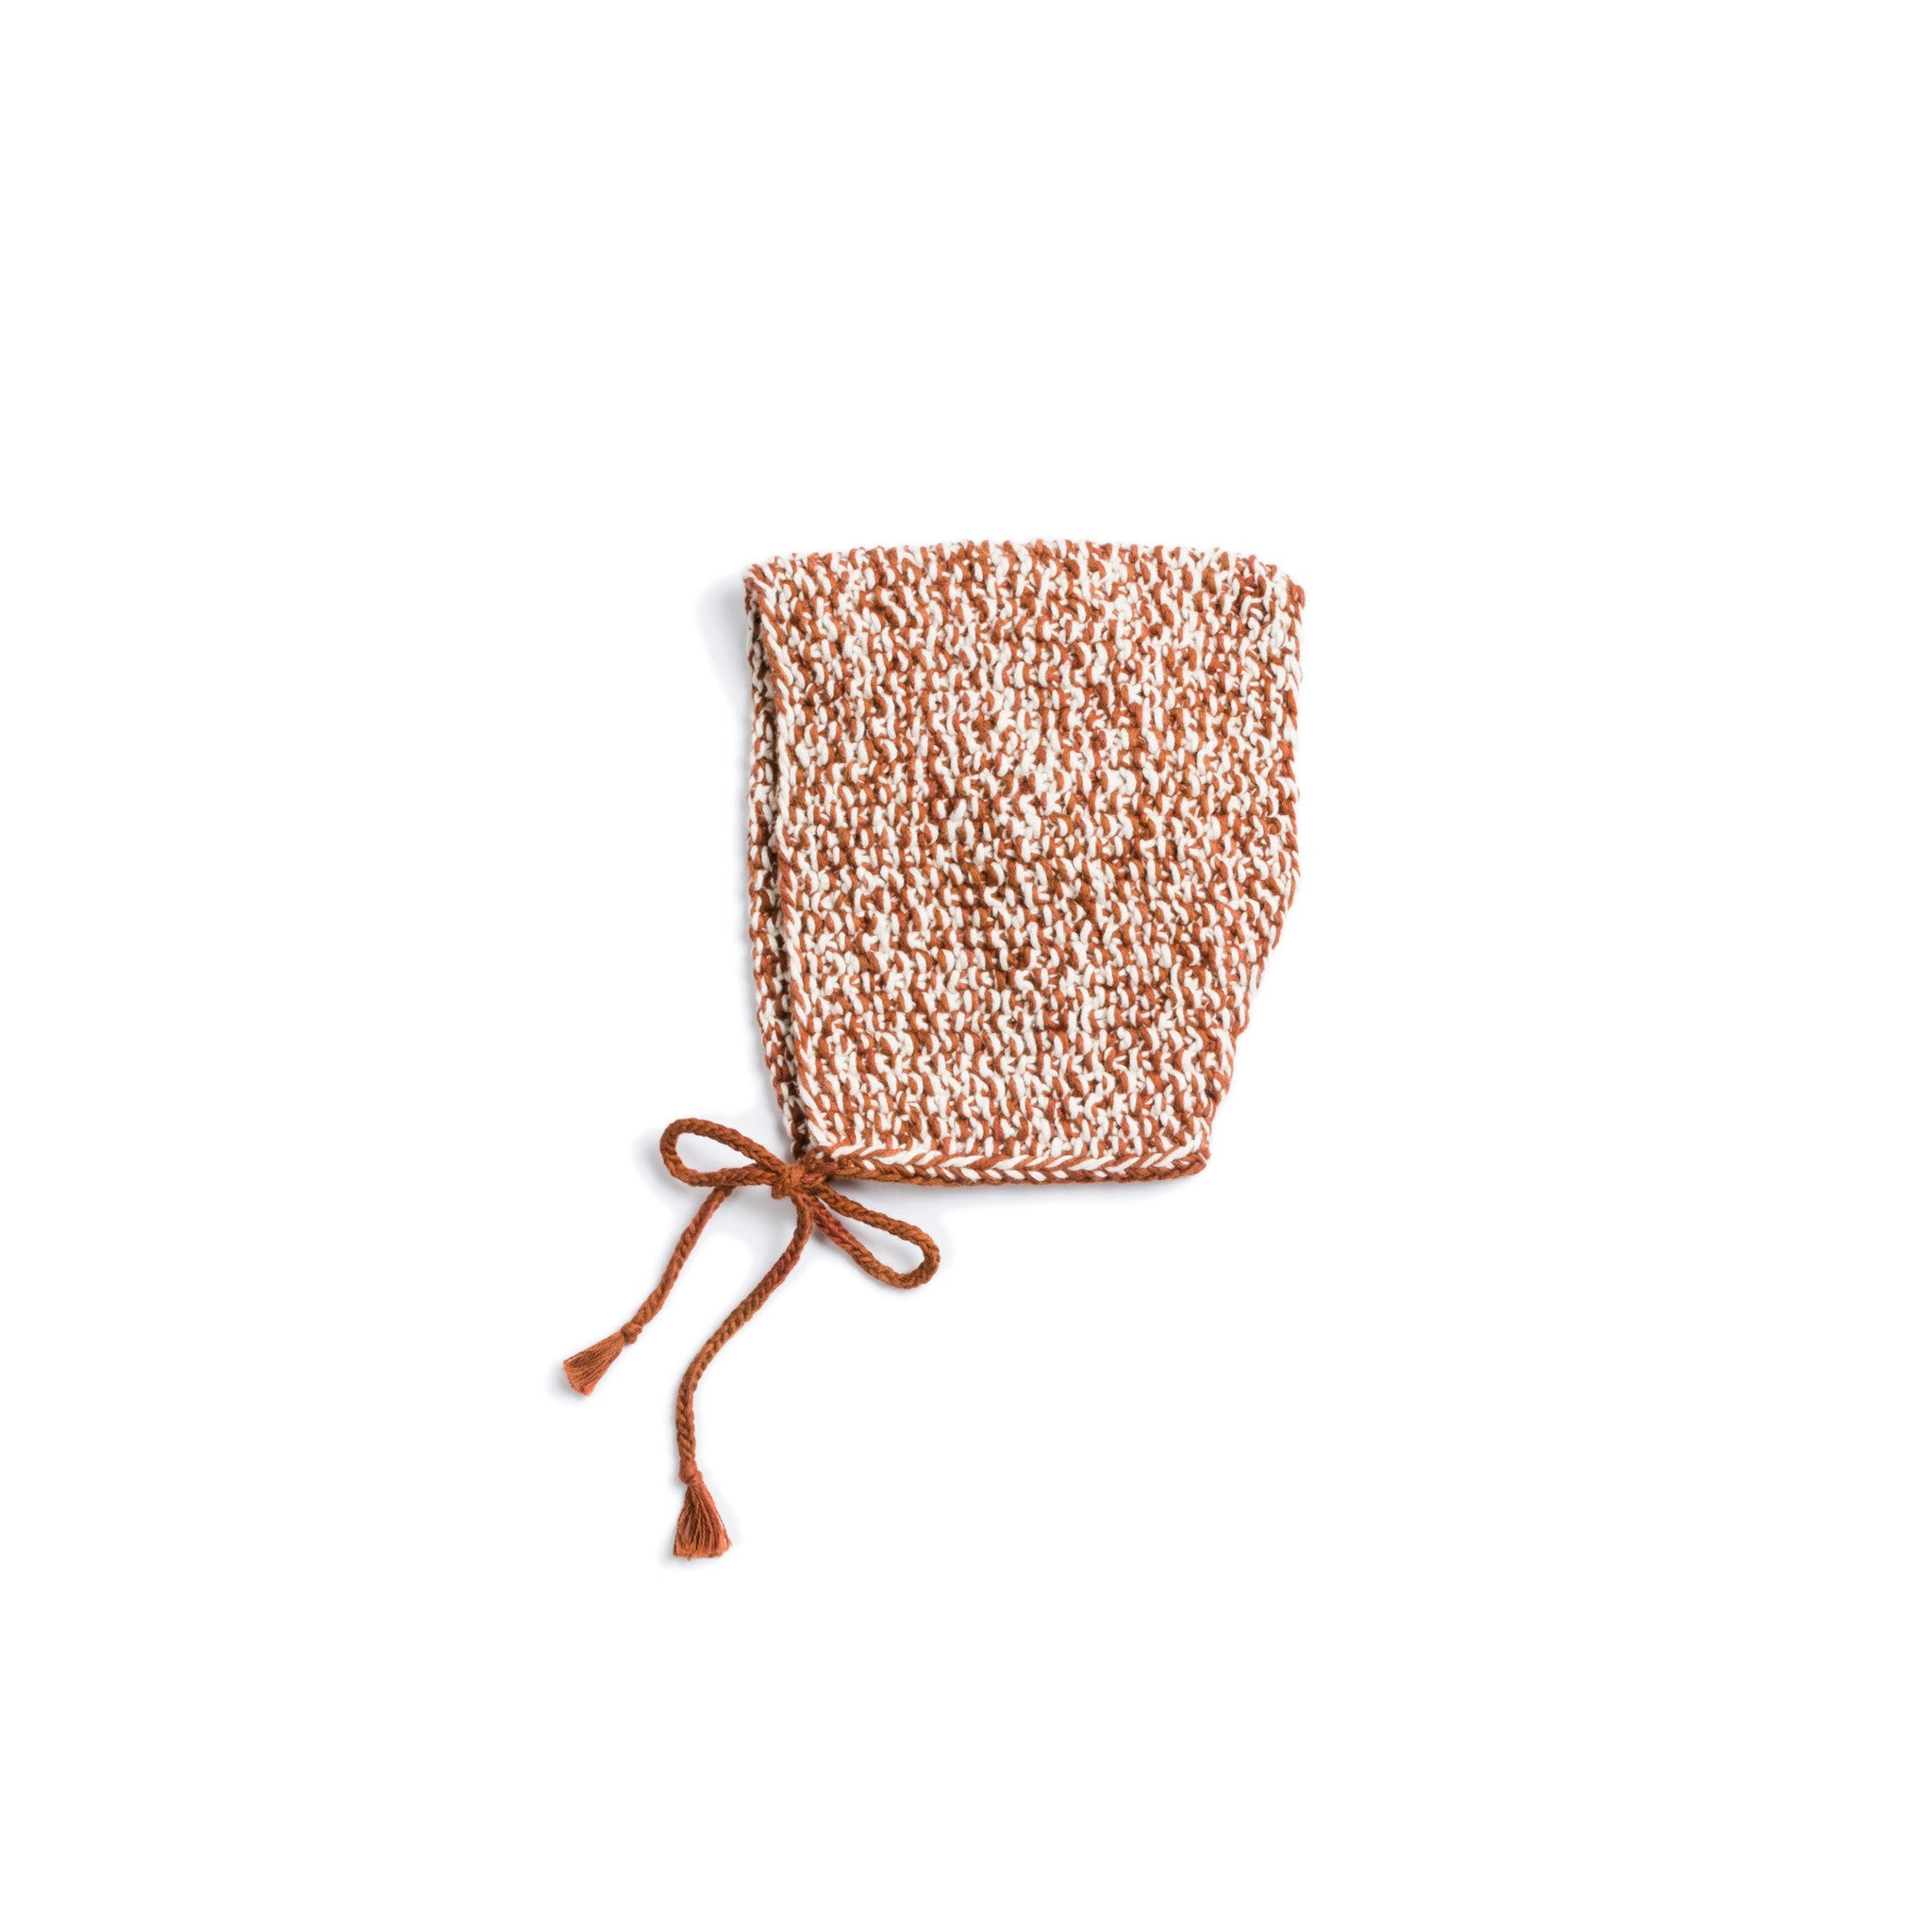 Misha & Puff Natural/Terracotta Sea Breeze Bonnet - Ladida